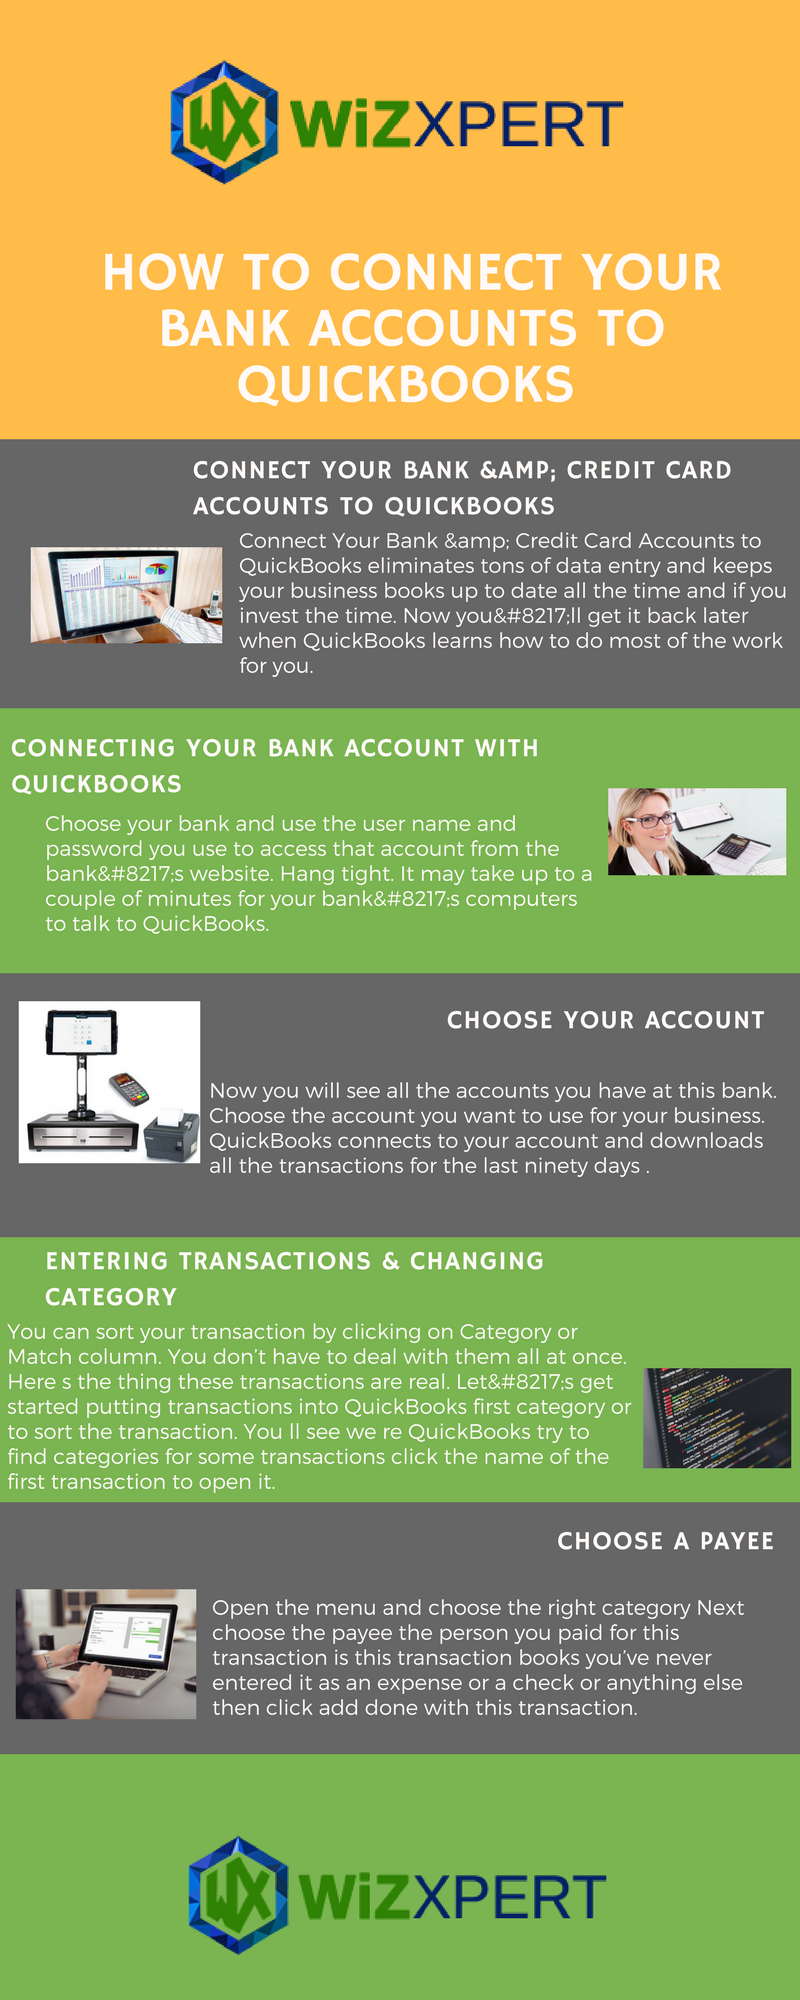 Pin by william123 1 on Infographics | Accounting, Data entry, Bank